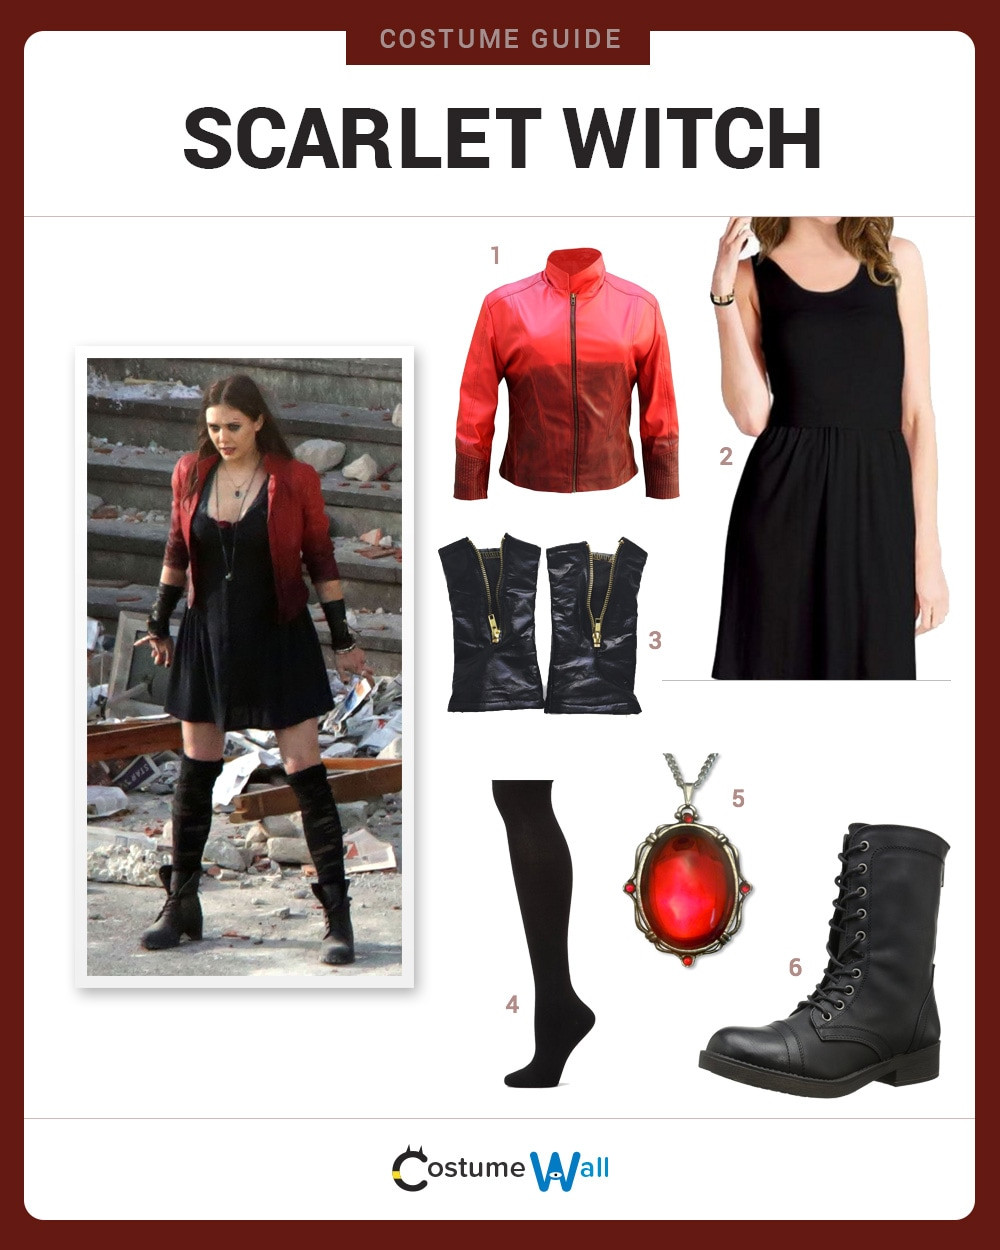 Best ideas about Scarlet Witch Costume DIY . Save or Pin Dress Like Scarlet Witch Costume DIY Outfit Now.